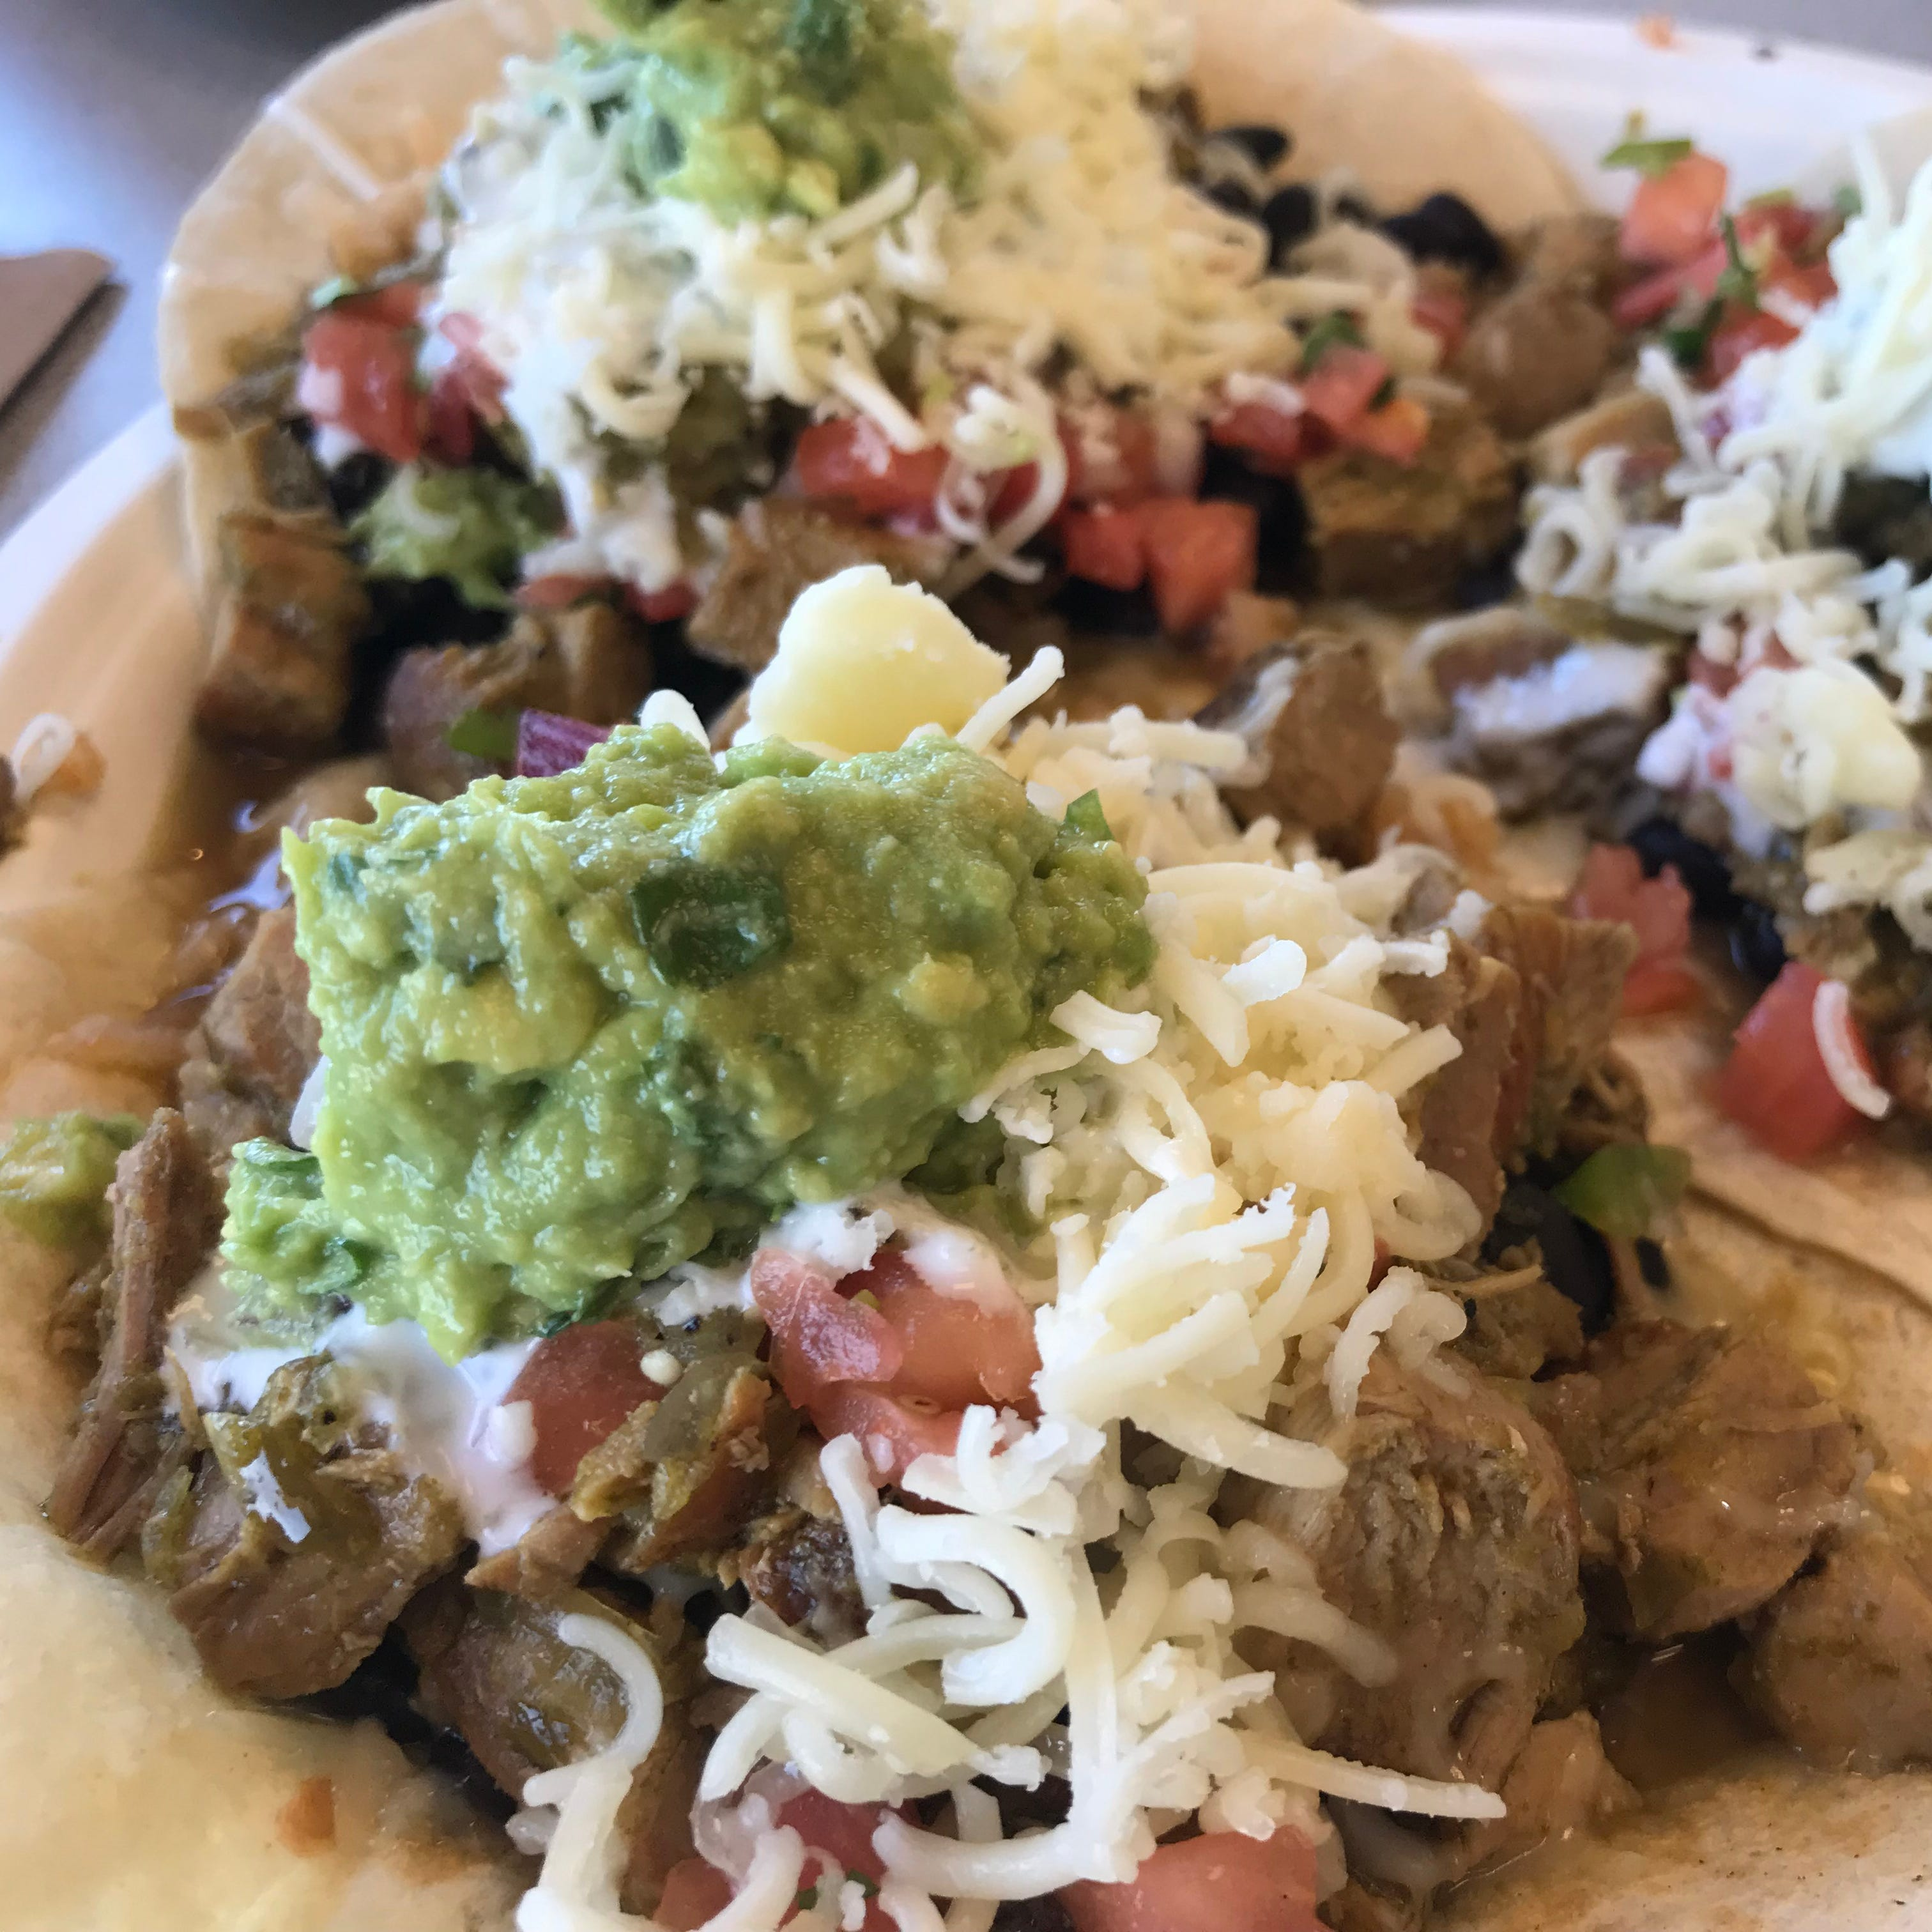 Let's Eat: Friendly faces, luscious dishes found at Lamy's Mexican Grill